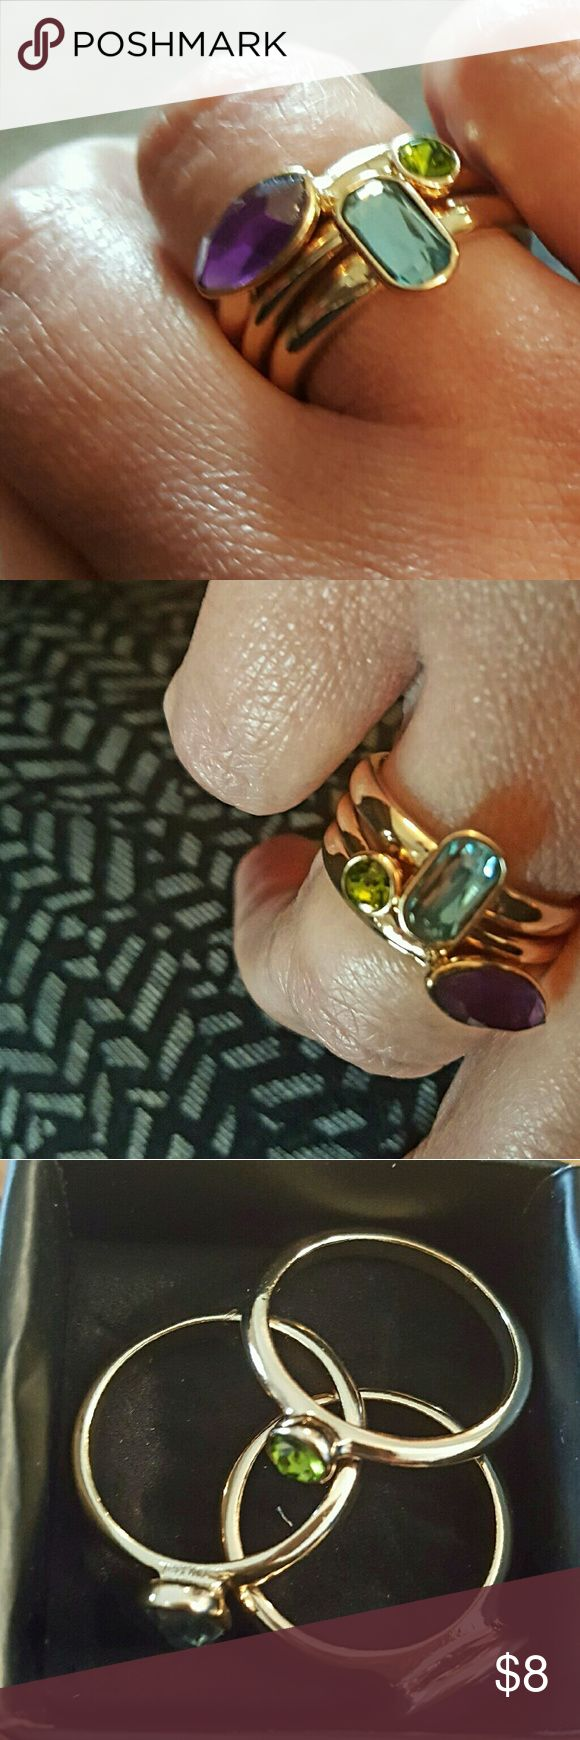 🌻Holiday party 3 ring set size 8🌻 price firm Gold plated with  amethyst,  peridot and aquamarine look alike stones. Got an extra one from my latest order. Avon Jewelry Rings